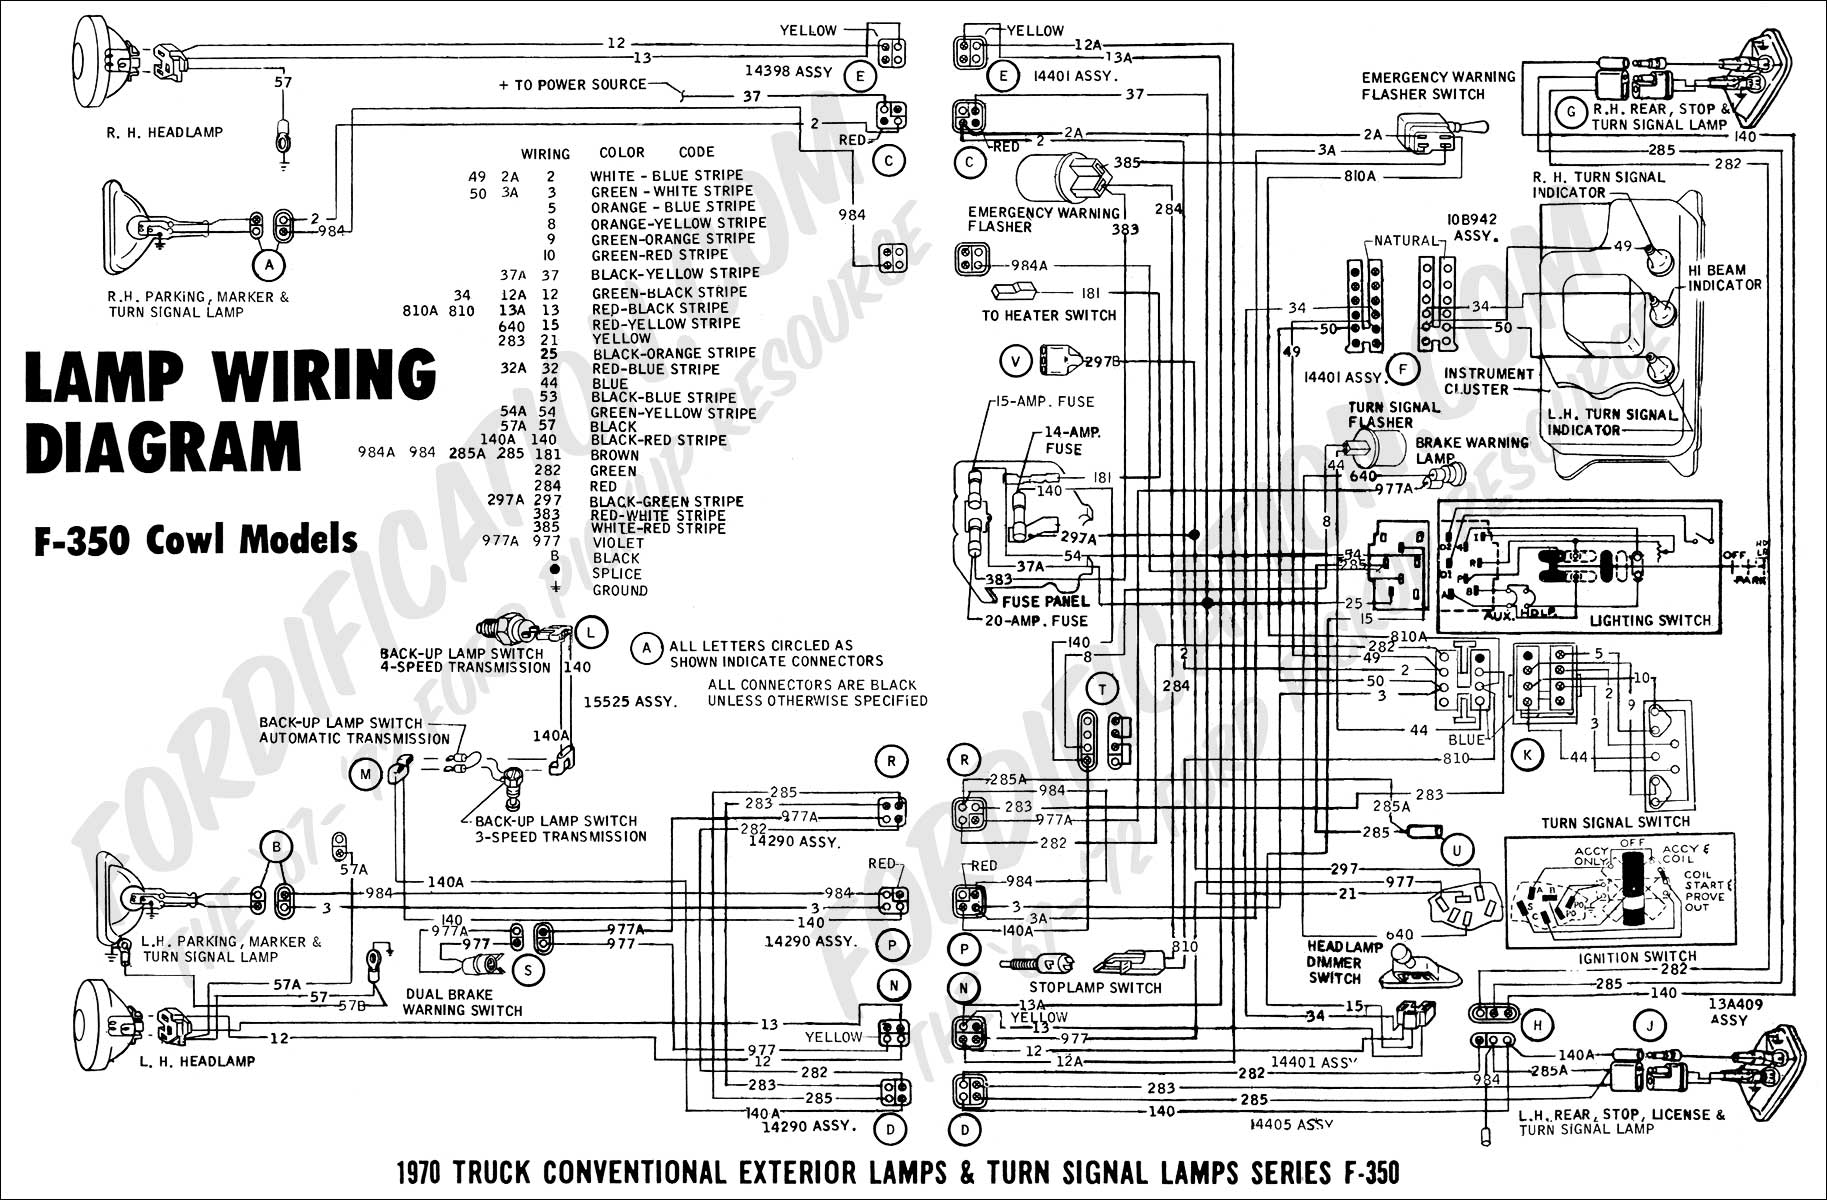 ford truck technical drawings and schematics section h wiring rh  fordification com 1970 Ford F100 Wiring Diagram 1975 Ford F-250 Wiring  Diagram